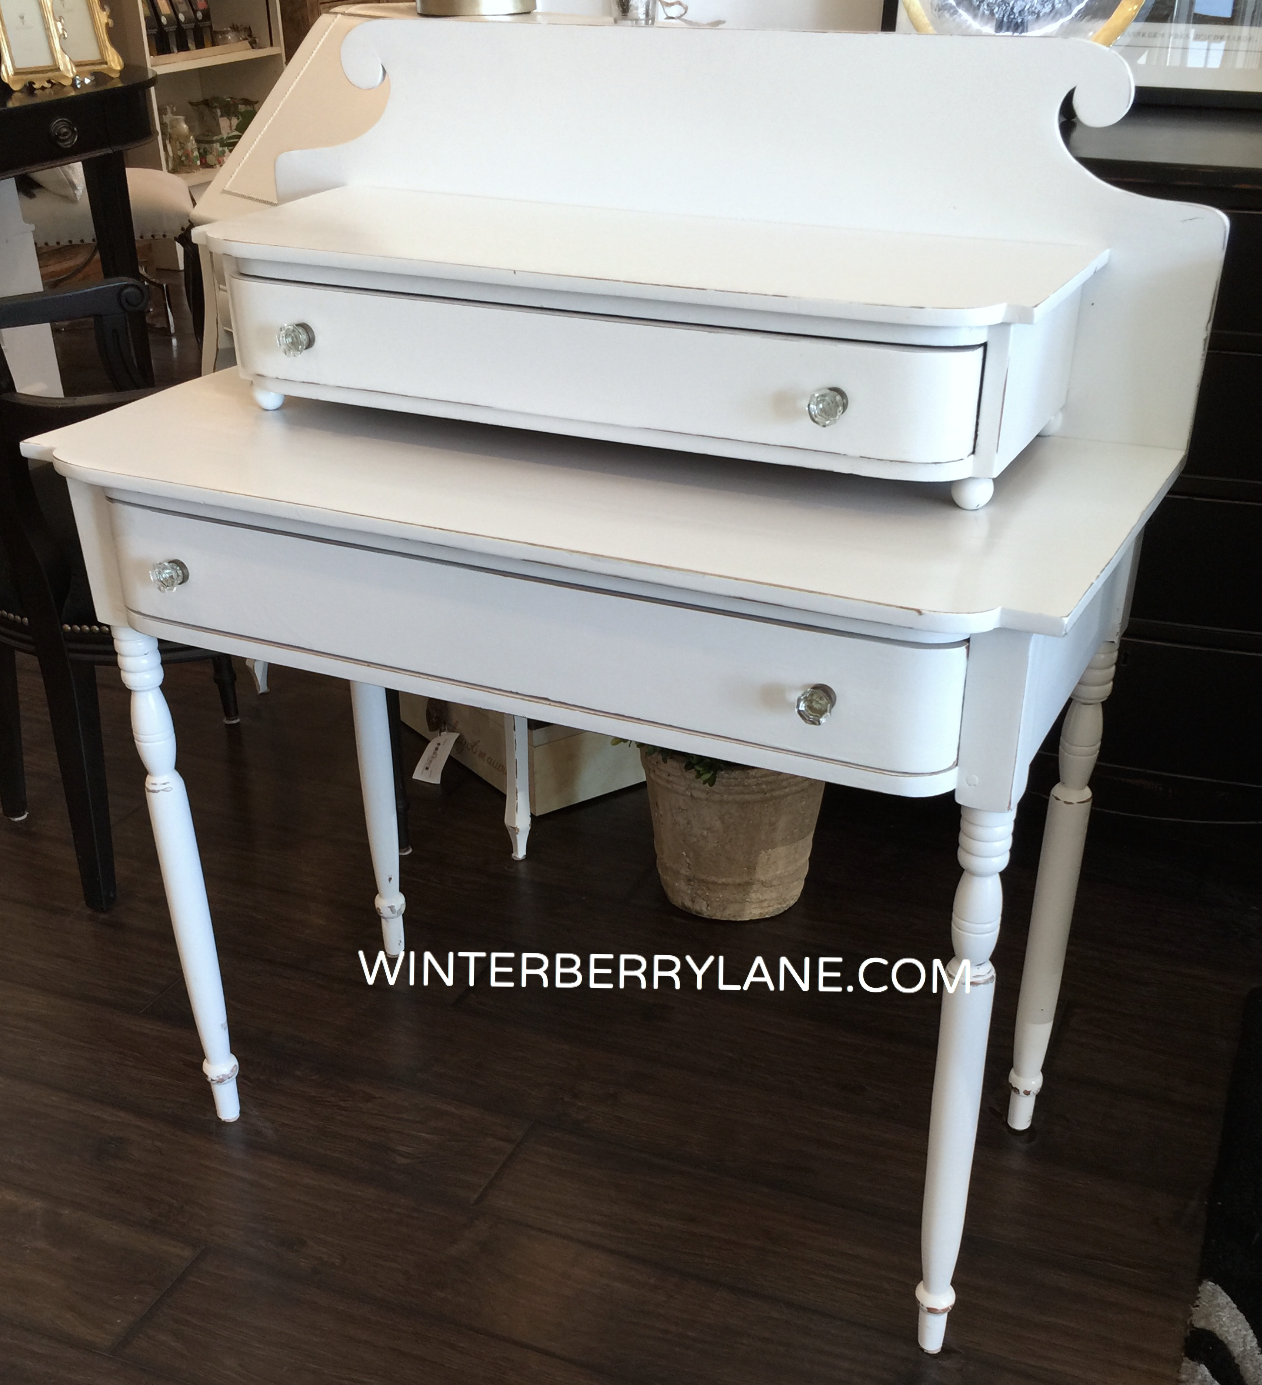 VINTAGE DOUBLE-TIER/DRAWER DESK